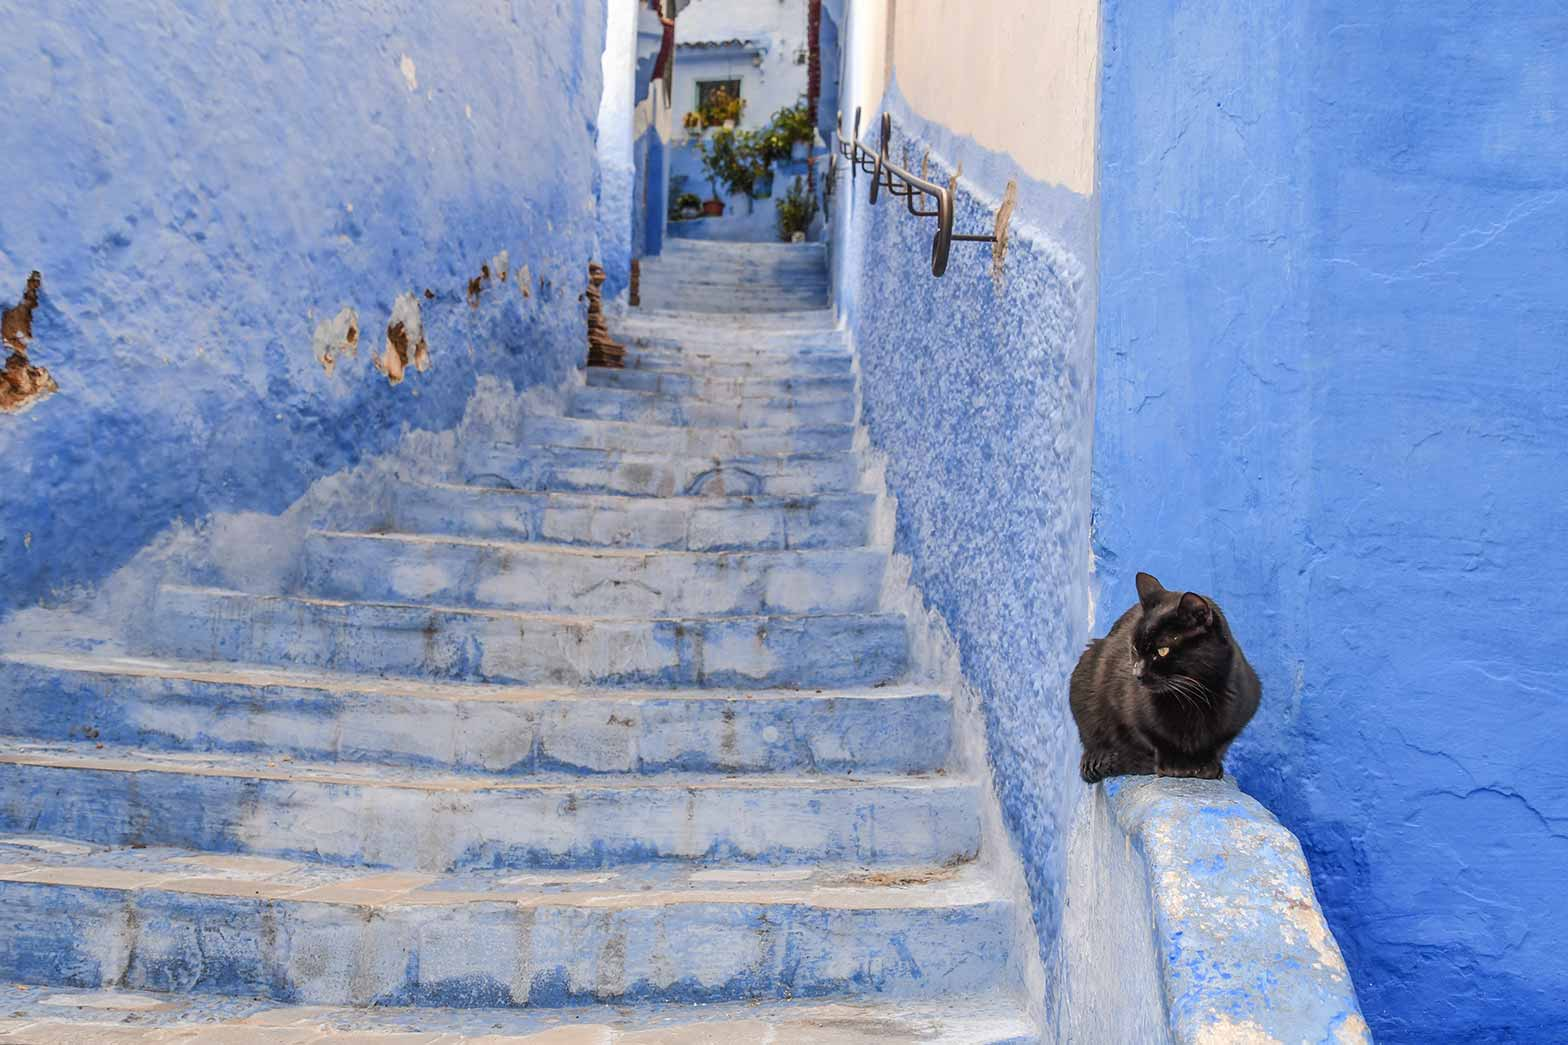 Stairs in Chefchaouen